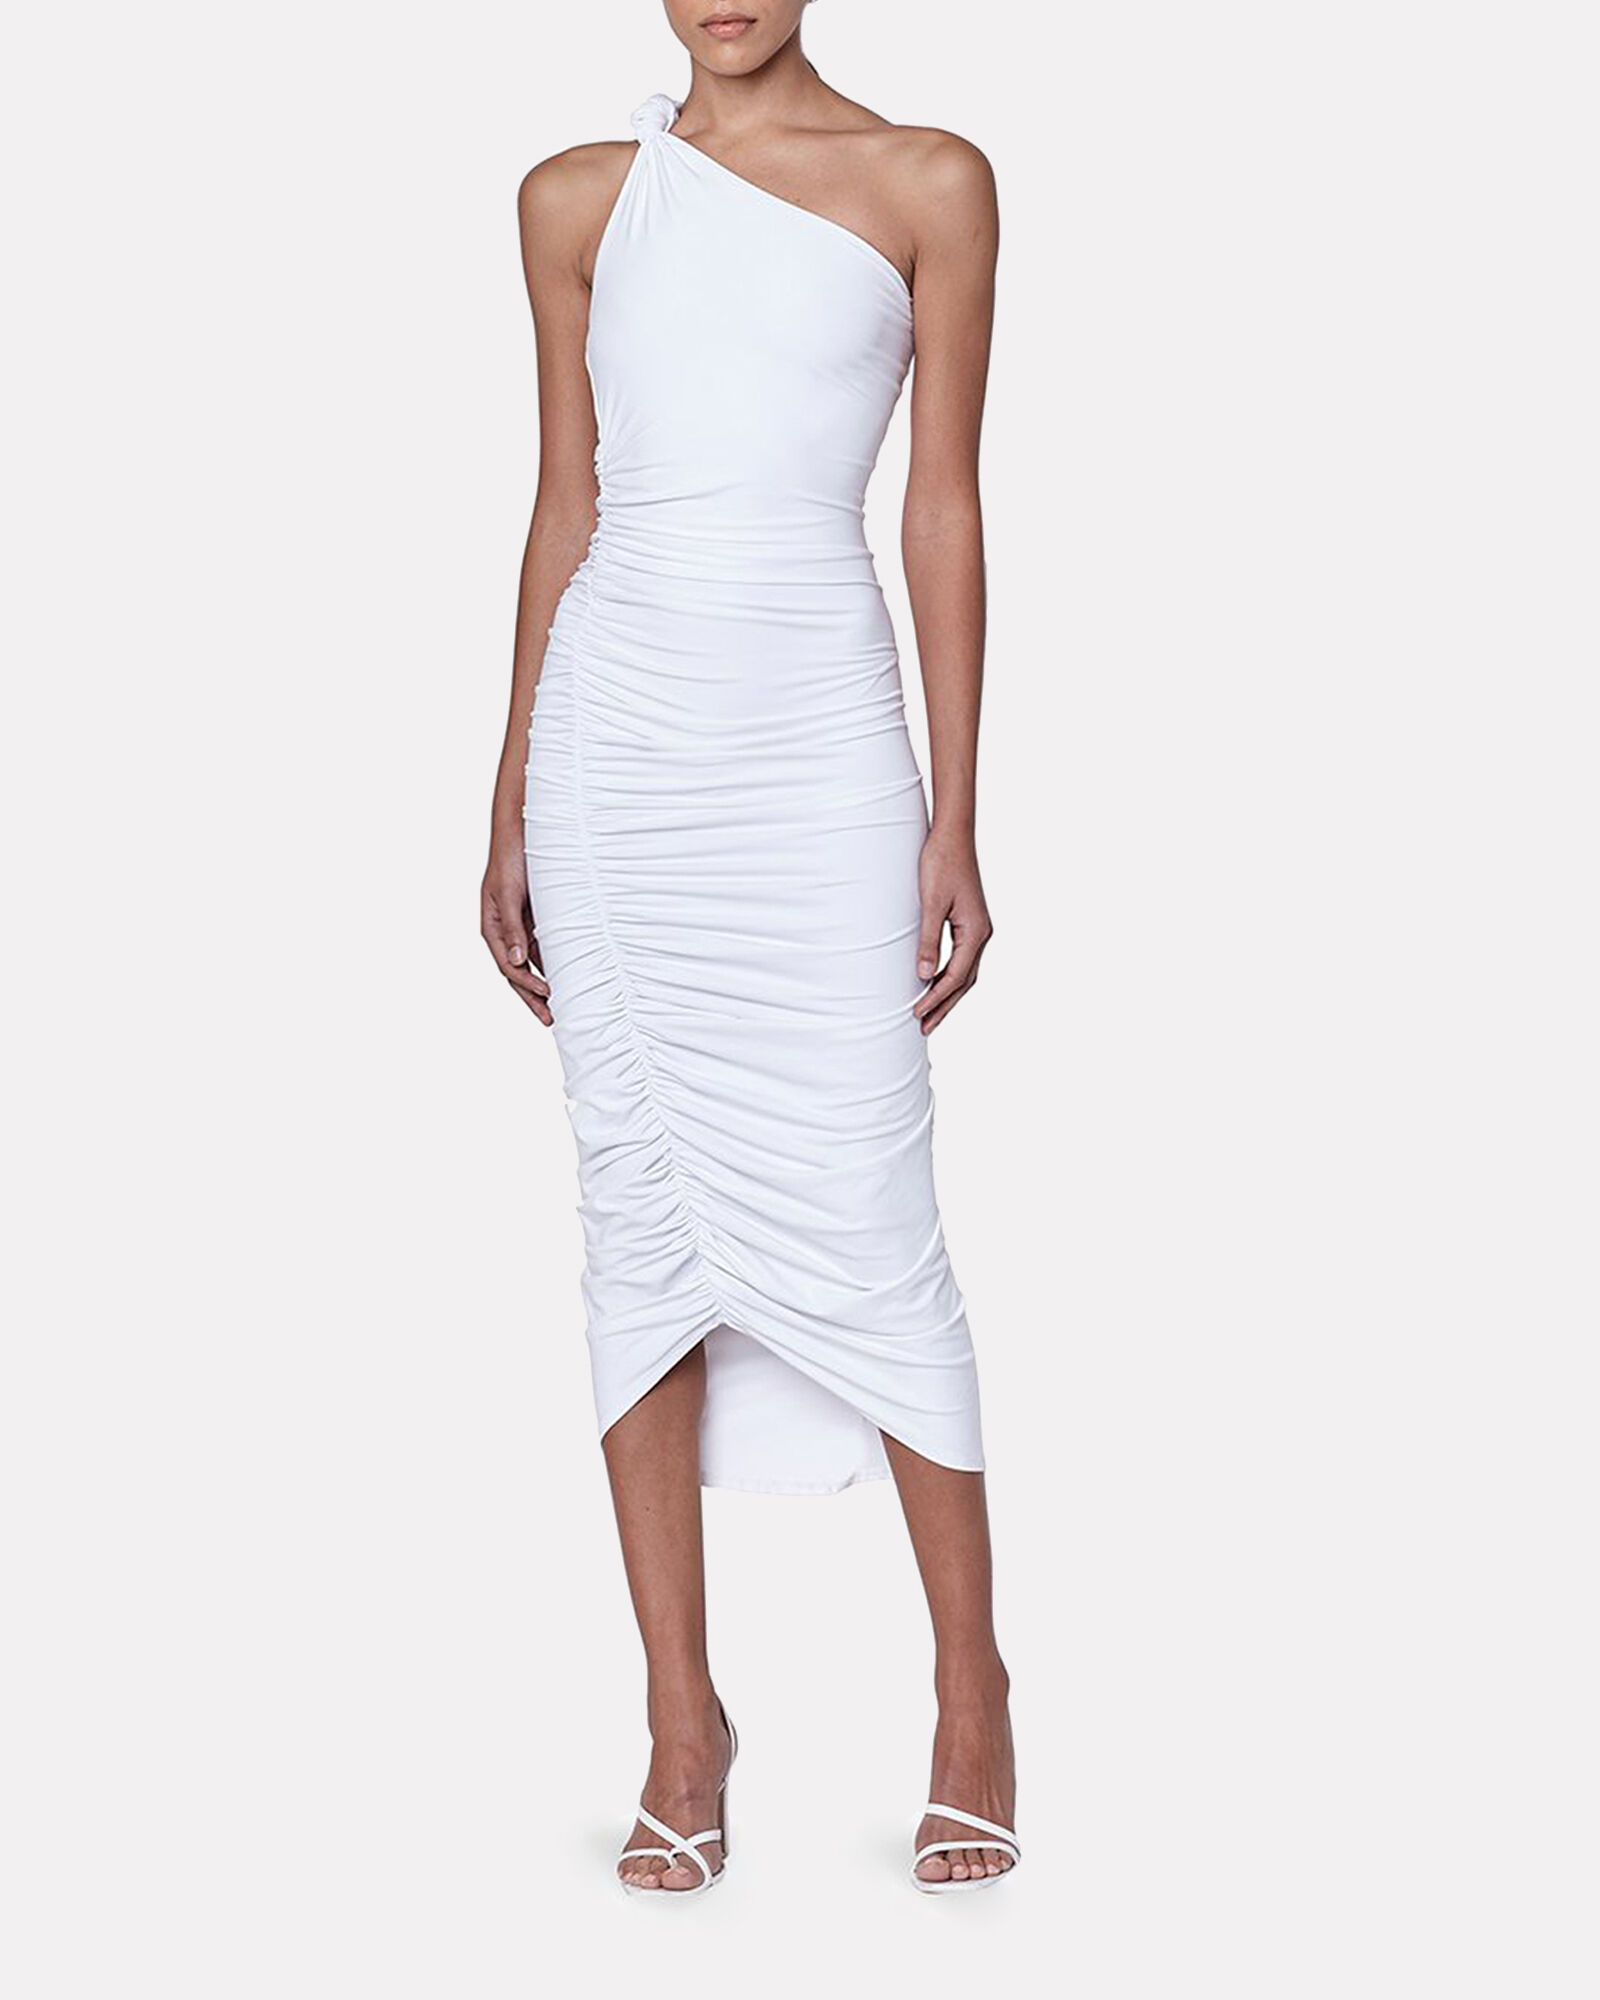 Celeste Ruched One-Shoulder Dress, WHITE, hi-res